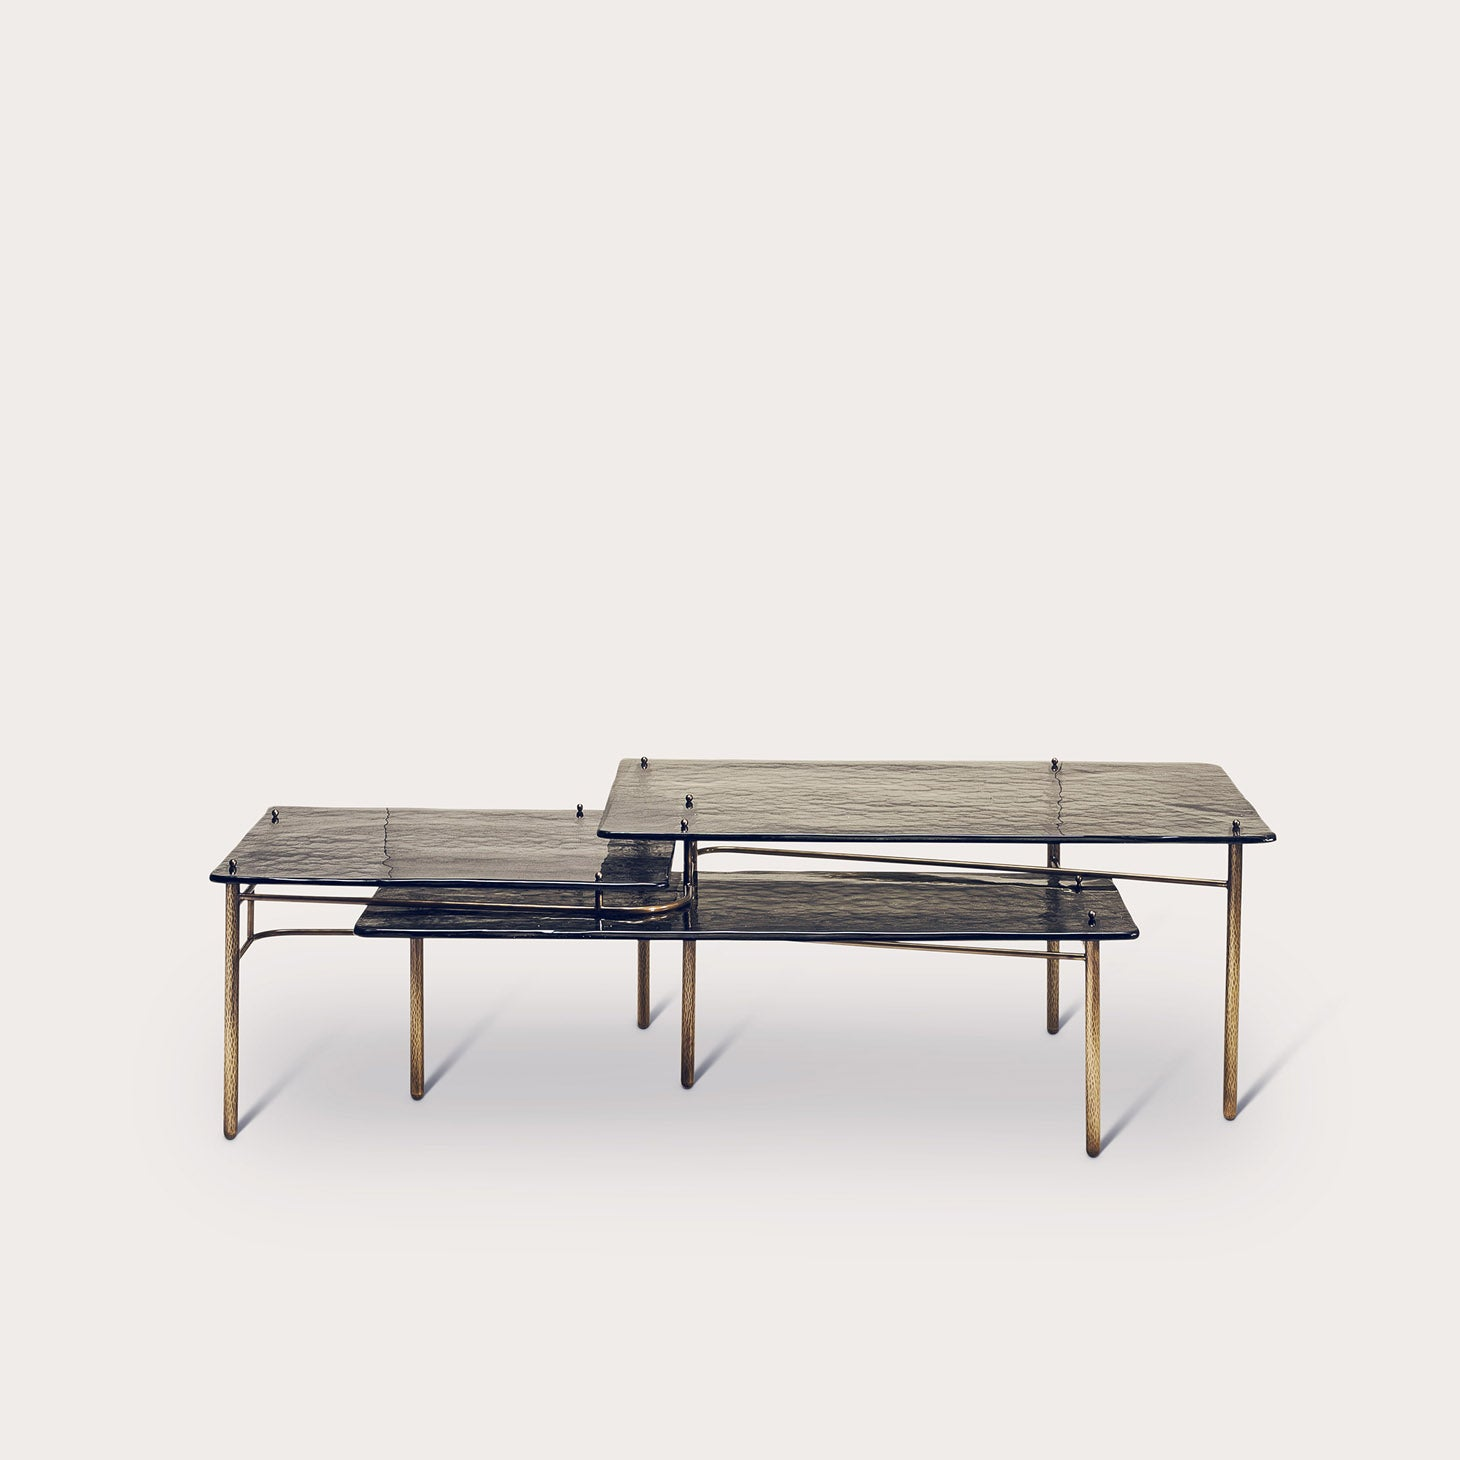 TARI Coffe Table Tables Bruno Moinard Designer Furniture Sku: 773-230-10007